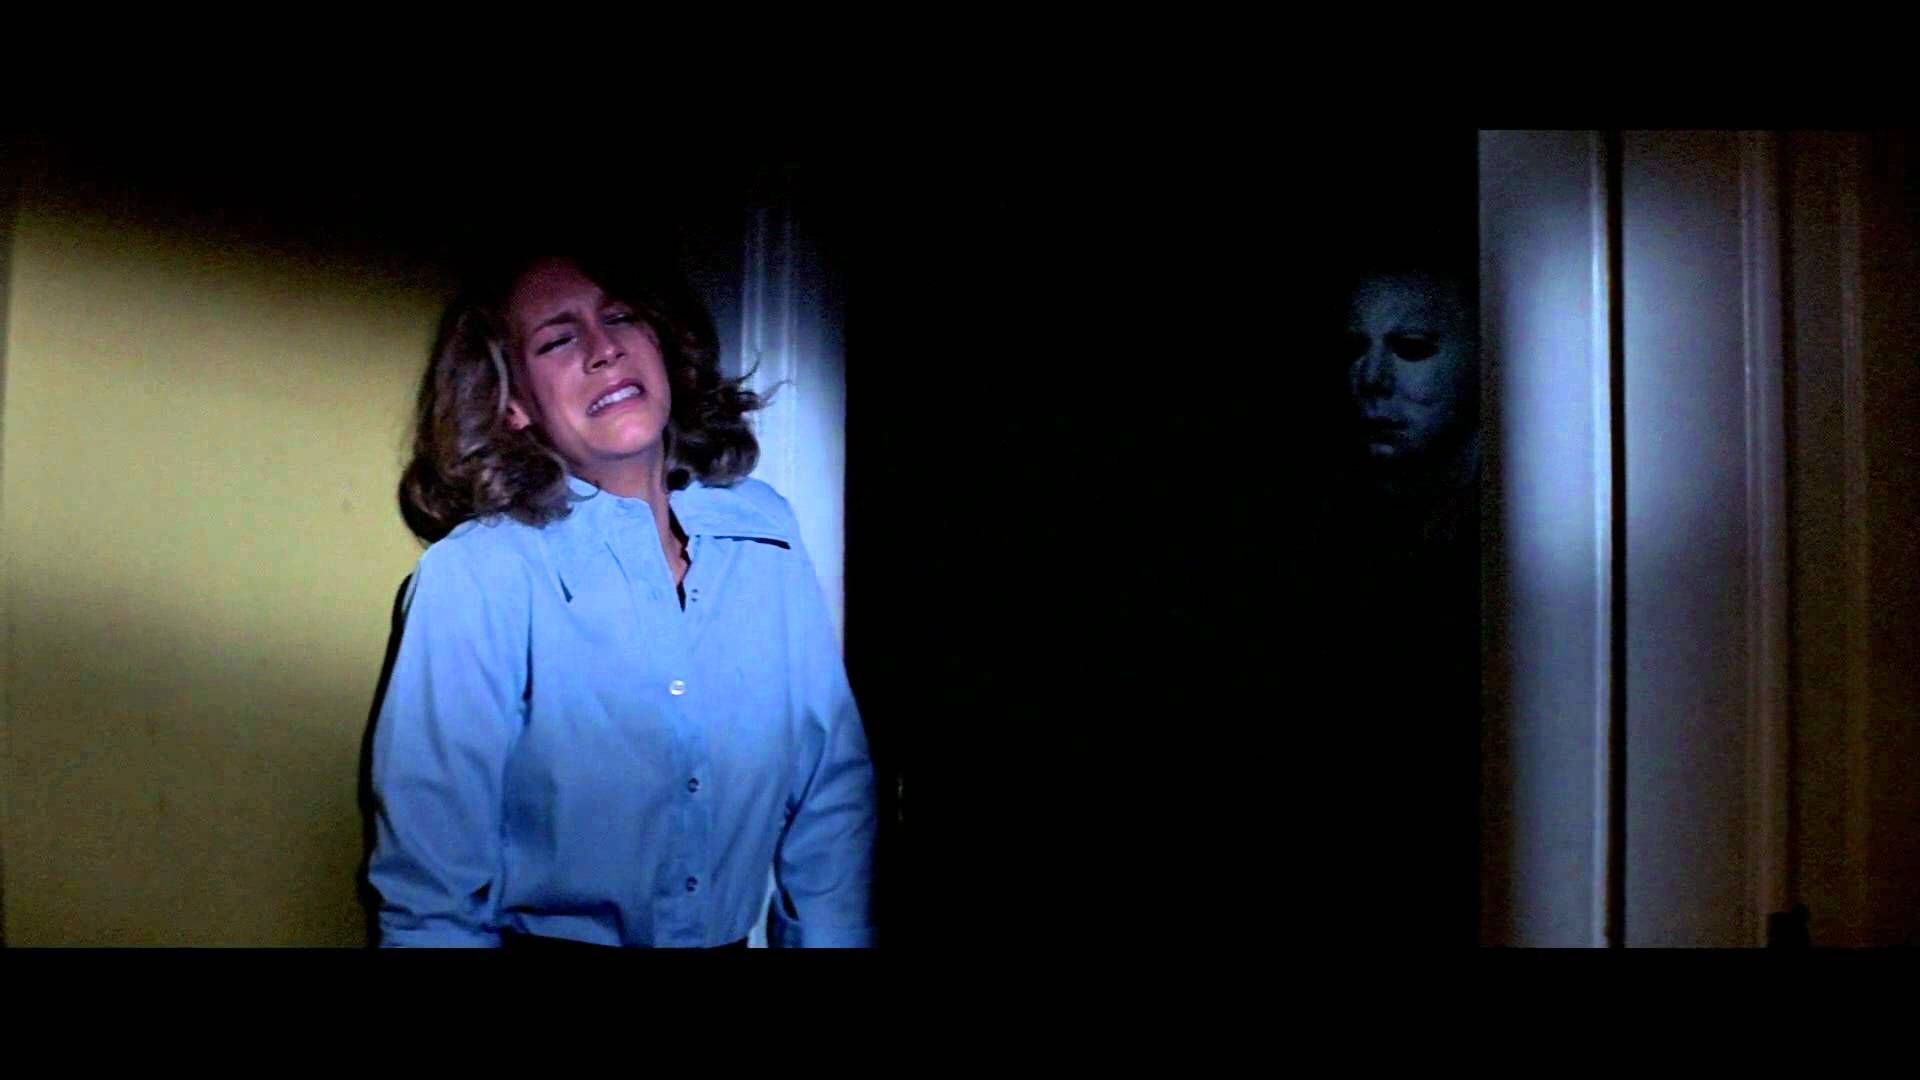 Jamie Lee Curtis as Laurie Strode in 'Halloween'